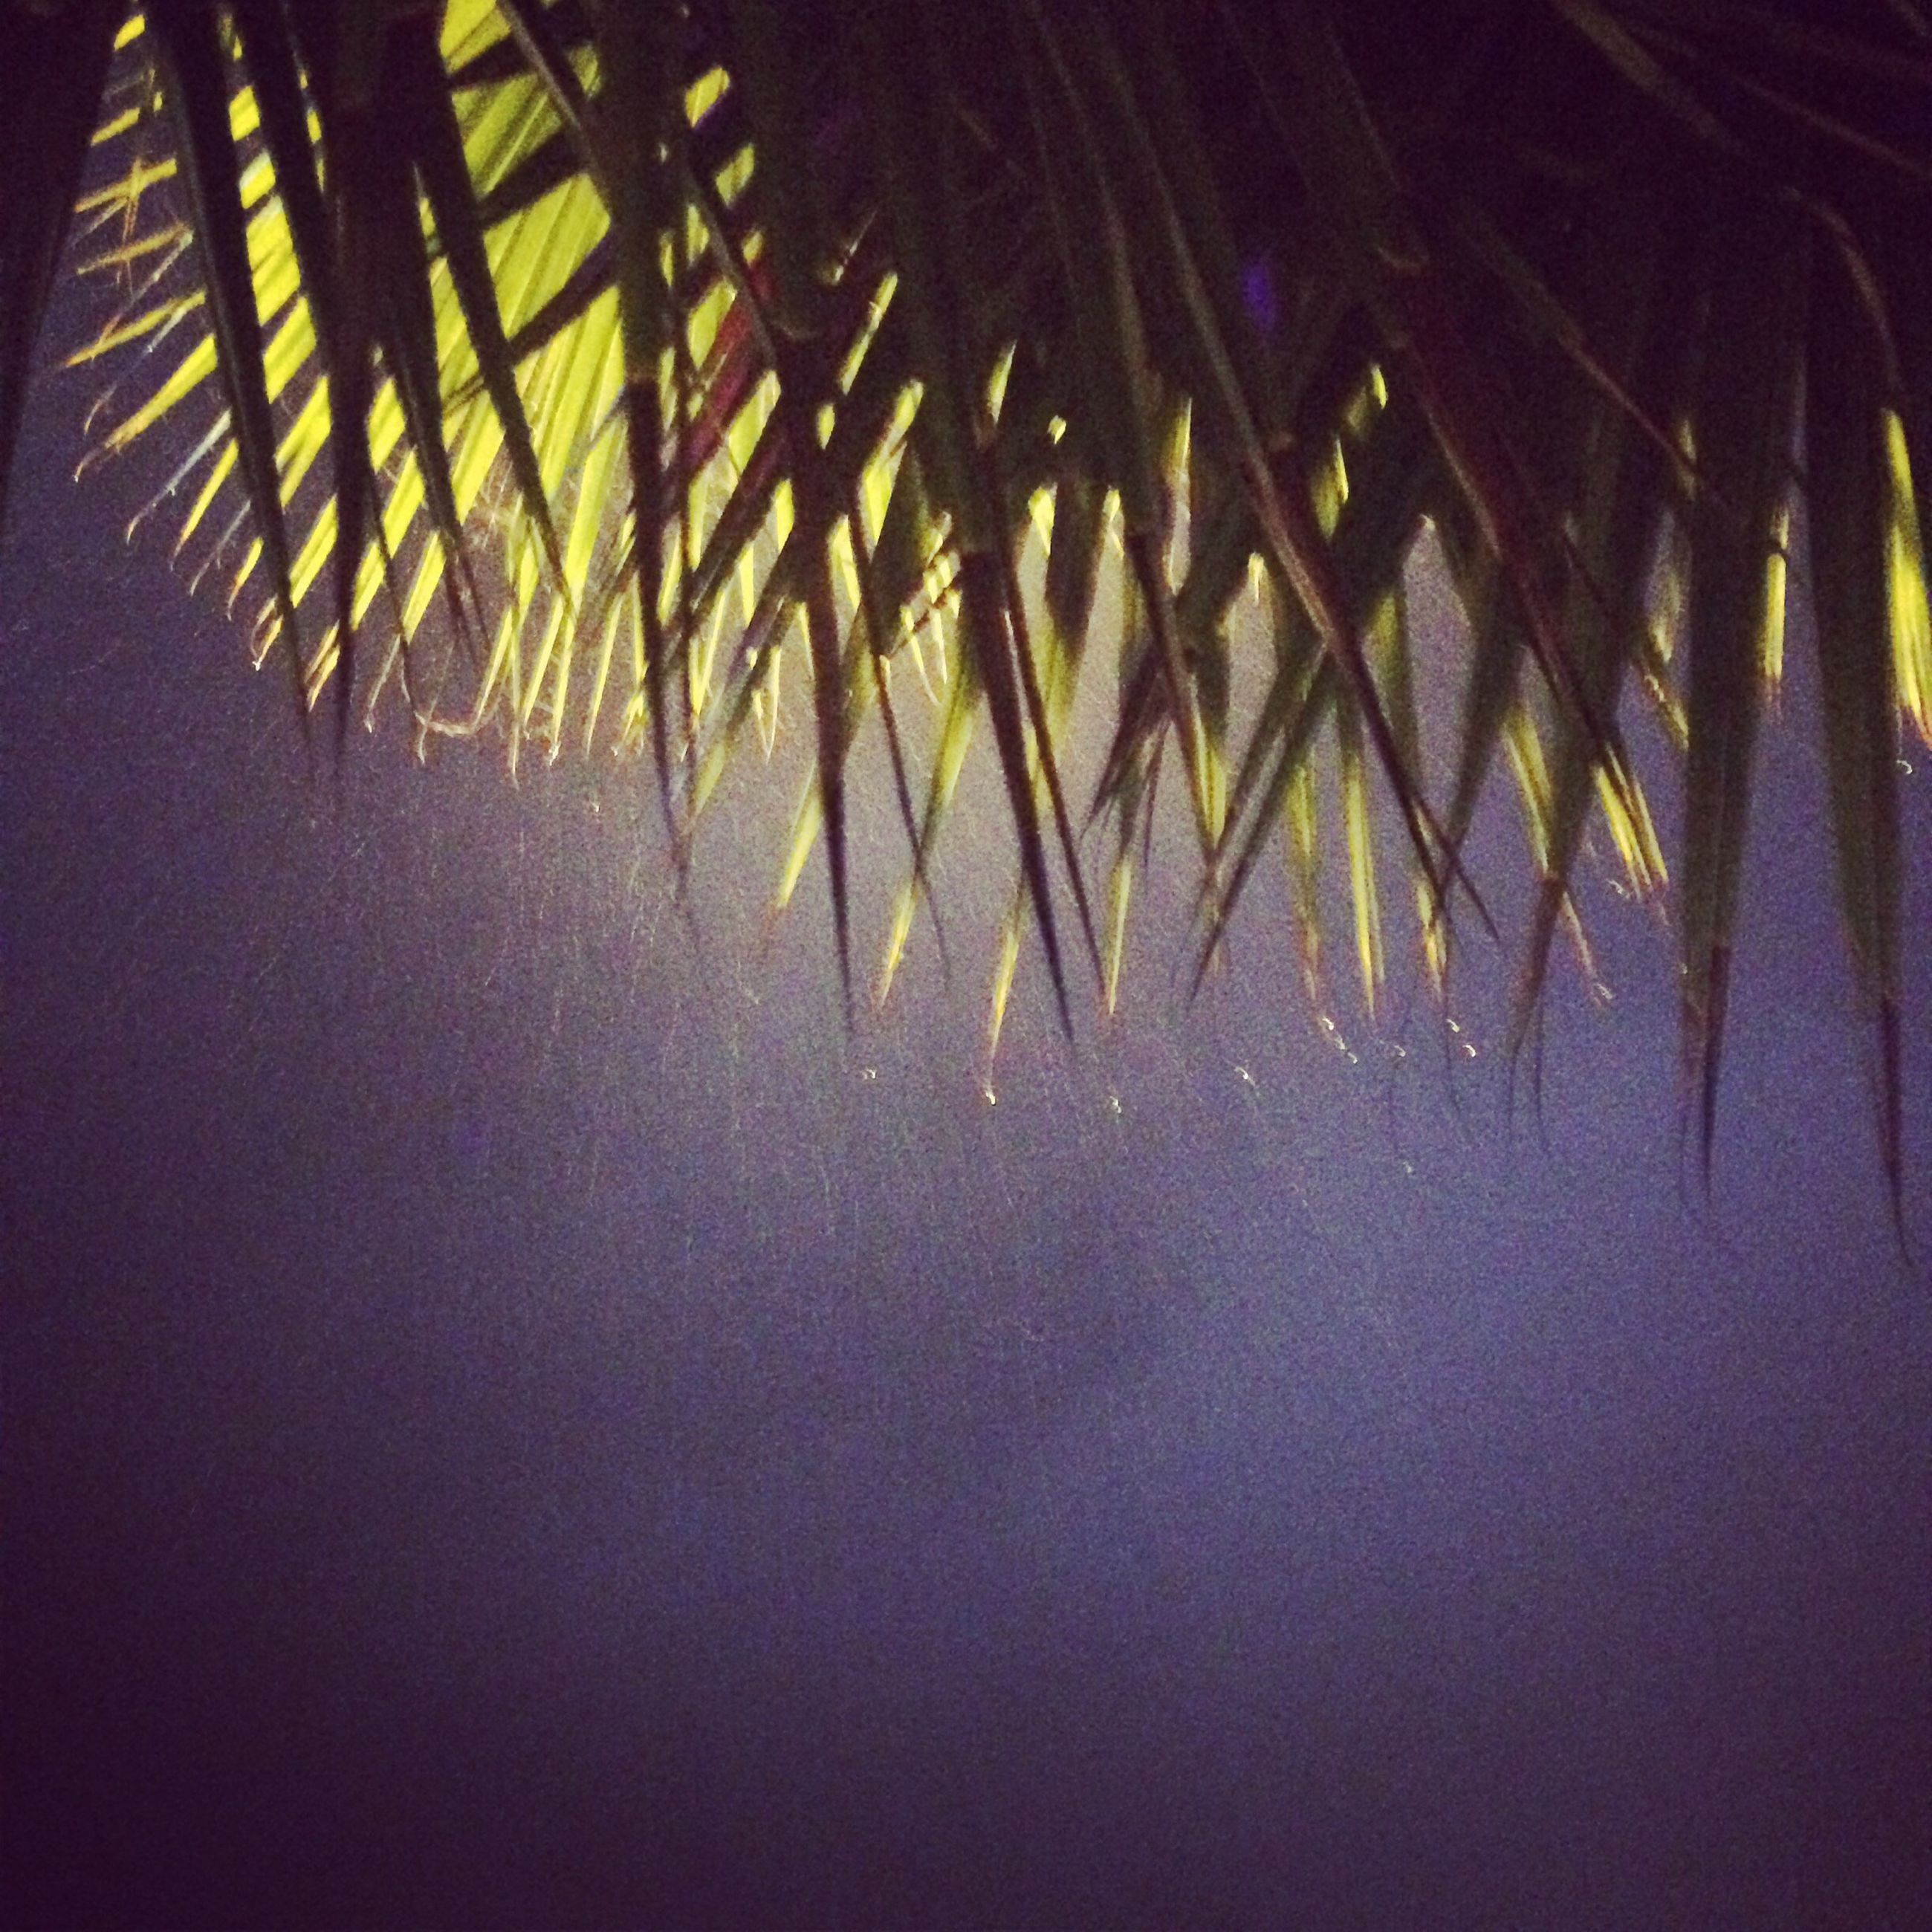 growth, nature, tranquility, plant, tree, palm tree, leaf, beauty in nature, no people, branch, outdoors, palm leaf, sunlight, day, close-up, tranquil scene, backgrounds, growing, green color, scenics